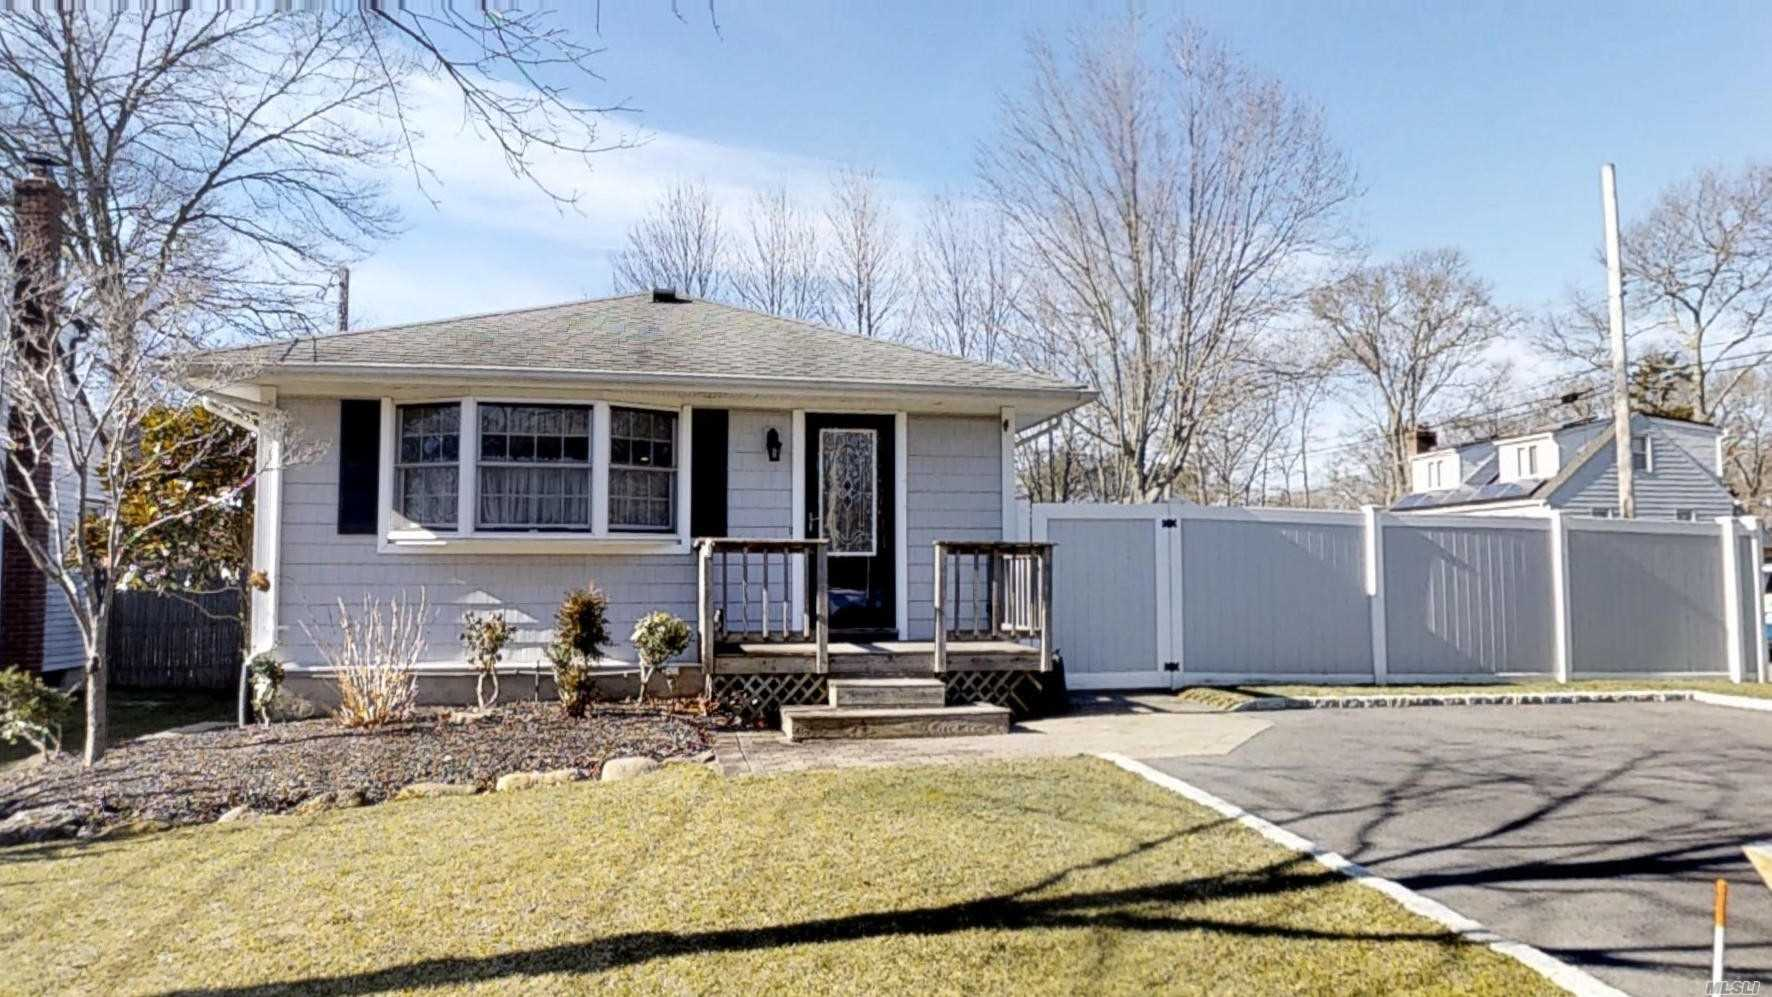 Meticulously Kept Home With Recently Updated Kitchen And Baths. Open Concept Floor Plan, Oak Floors, Full Bsmt W/ Private Entrance, Well Maintained Grounds And Privately Fenced Corner Lot Yard With Shed And Paver Patio. Updated And Affordable Natural Gas Heating System! This Home Is Adorable And Inviting, Don't Miss The Virtual Tour!